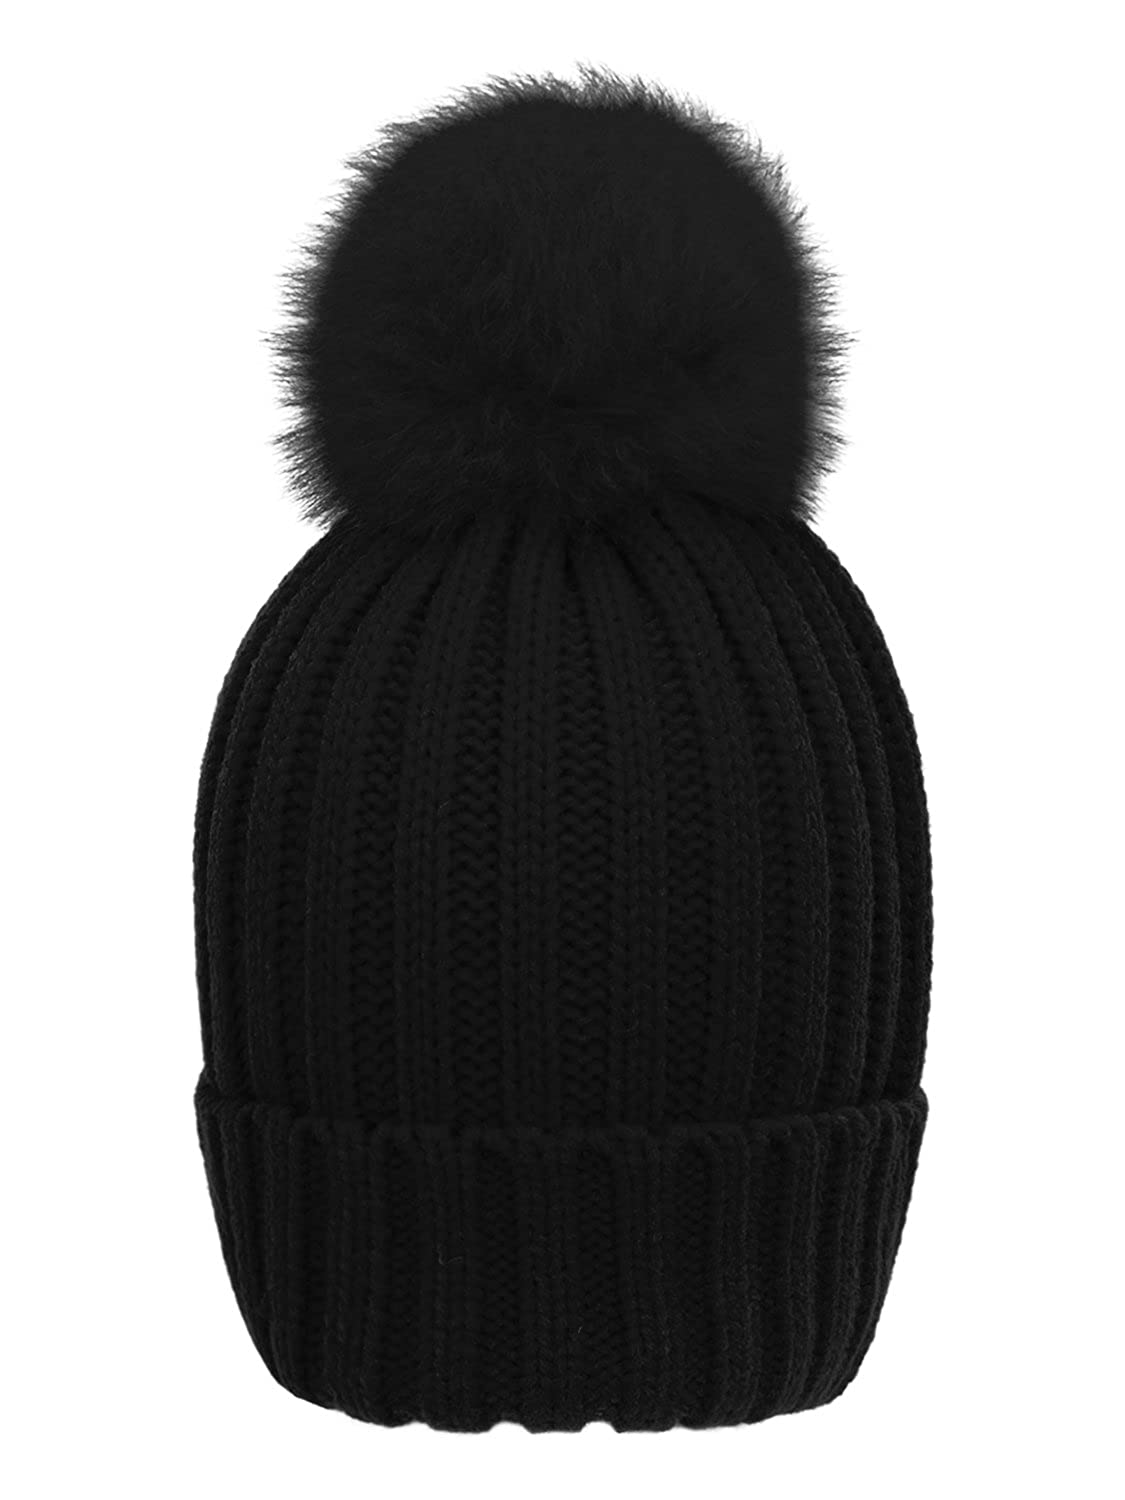 8d574792d55 LITHER Winter Knit Hat Real Fox Fur Pom Pom Womens Girls Knit Beanie Hat  Black at Amazon Women s Clothing store